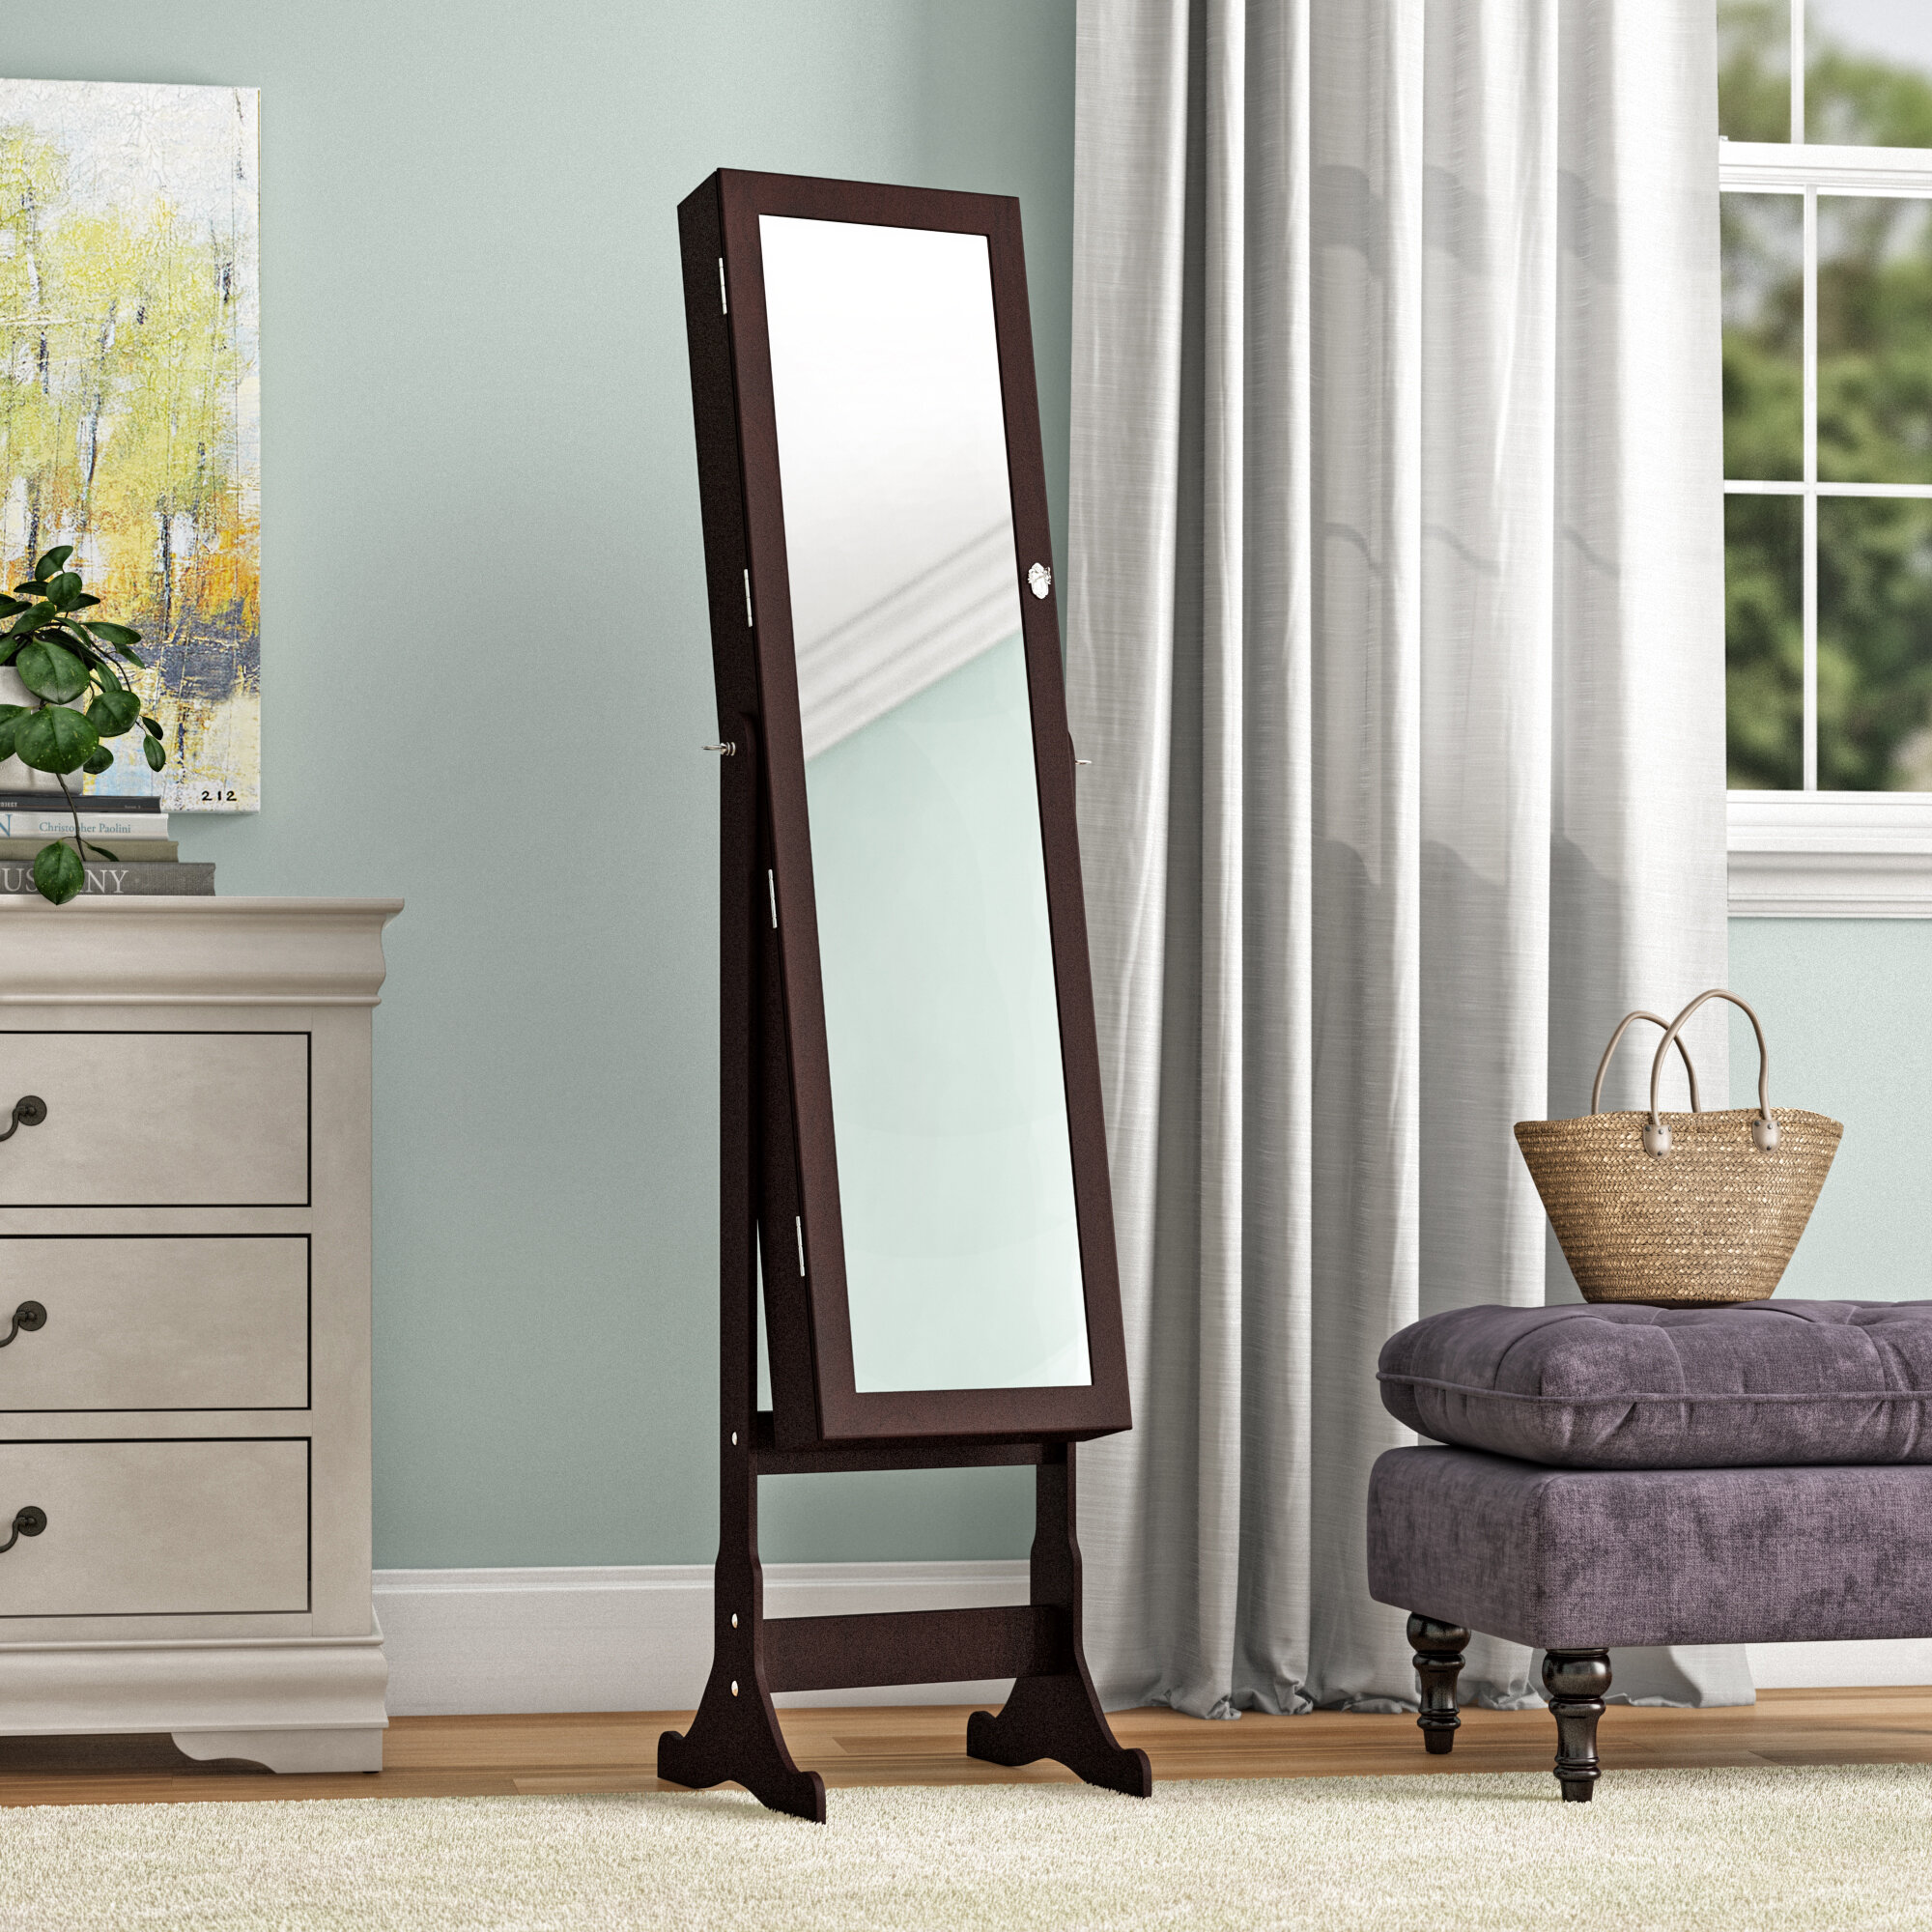 Image of: Alcott Hill Pringle Free Standing Jewelry Armoire With Mirror Reviews Wayfair